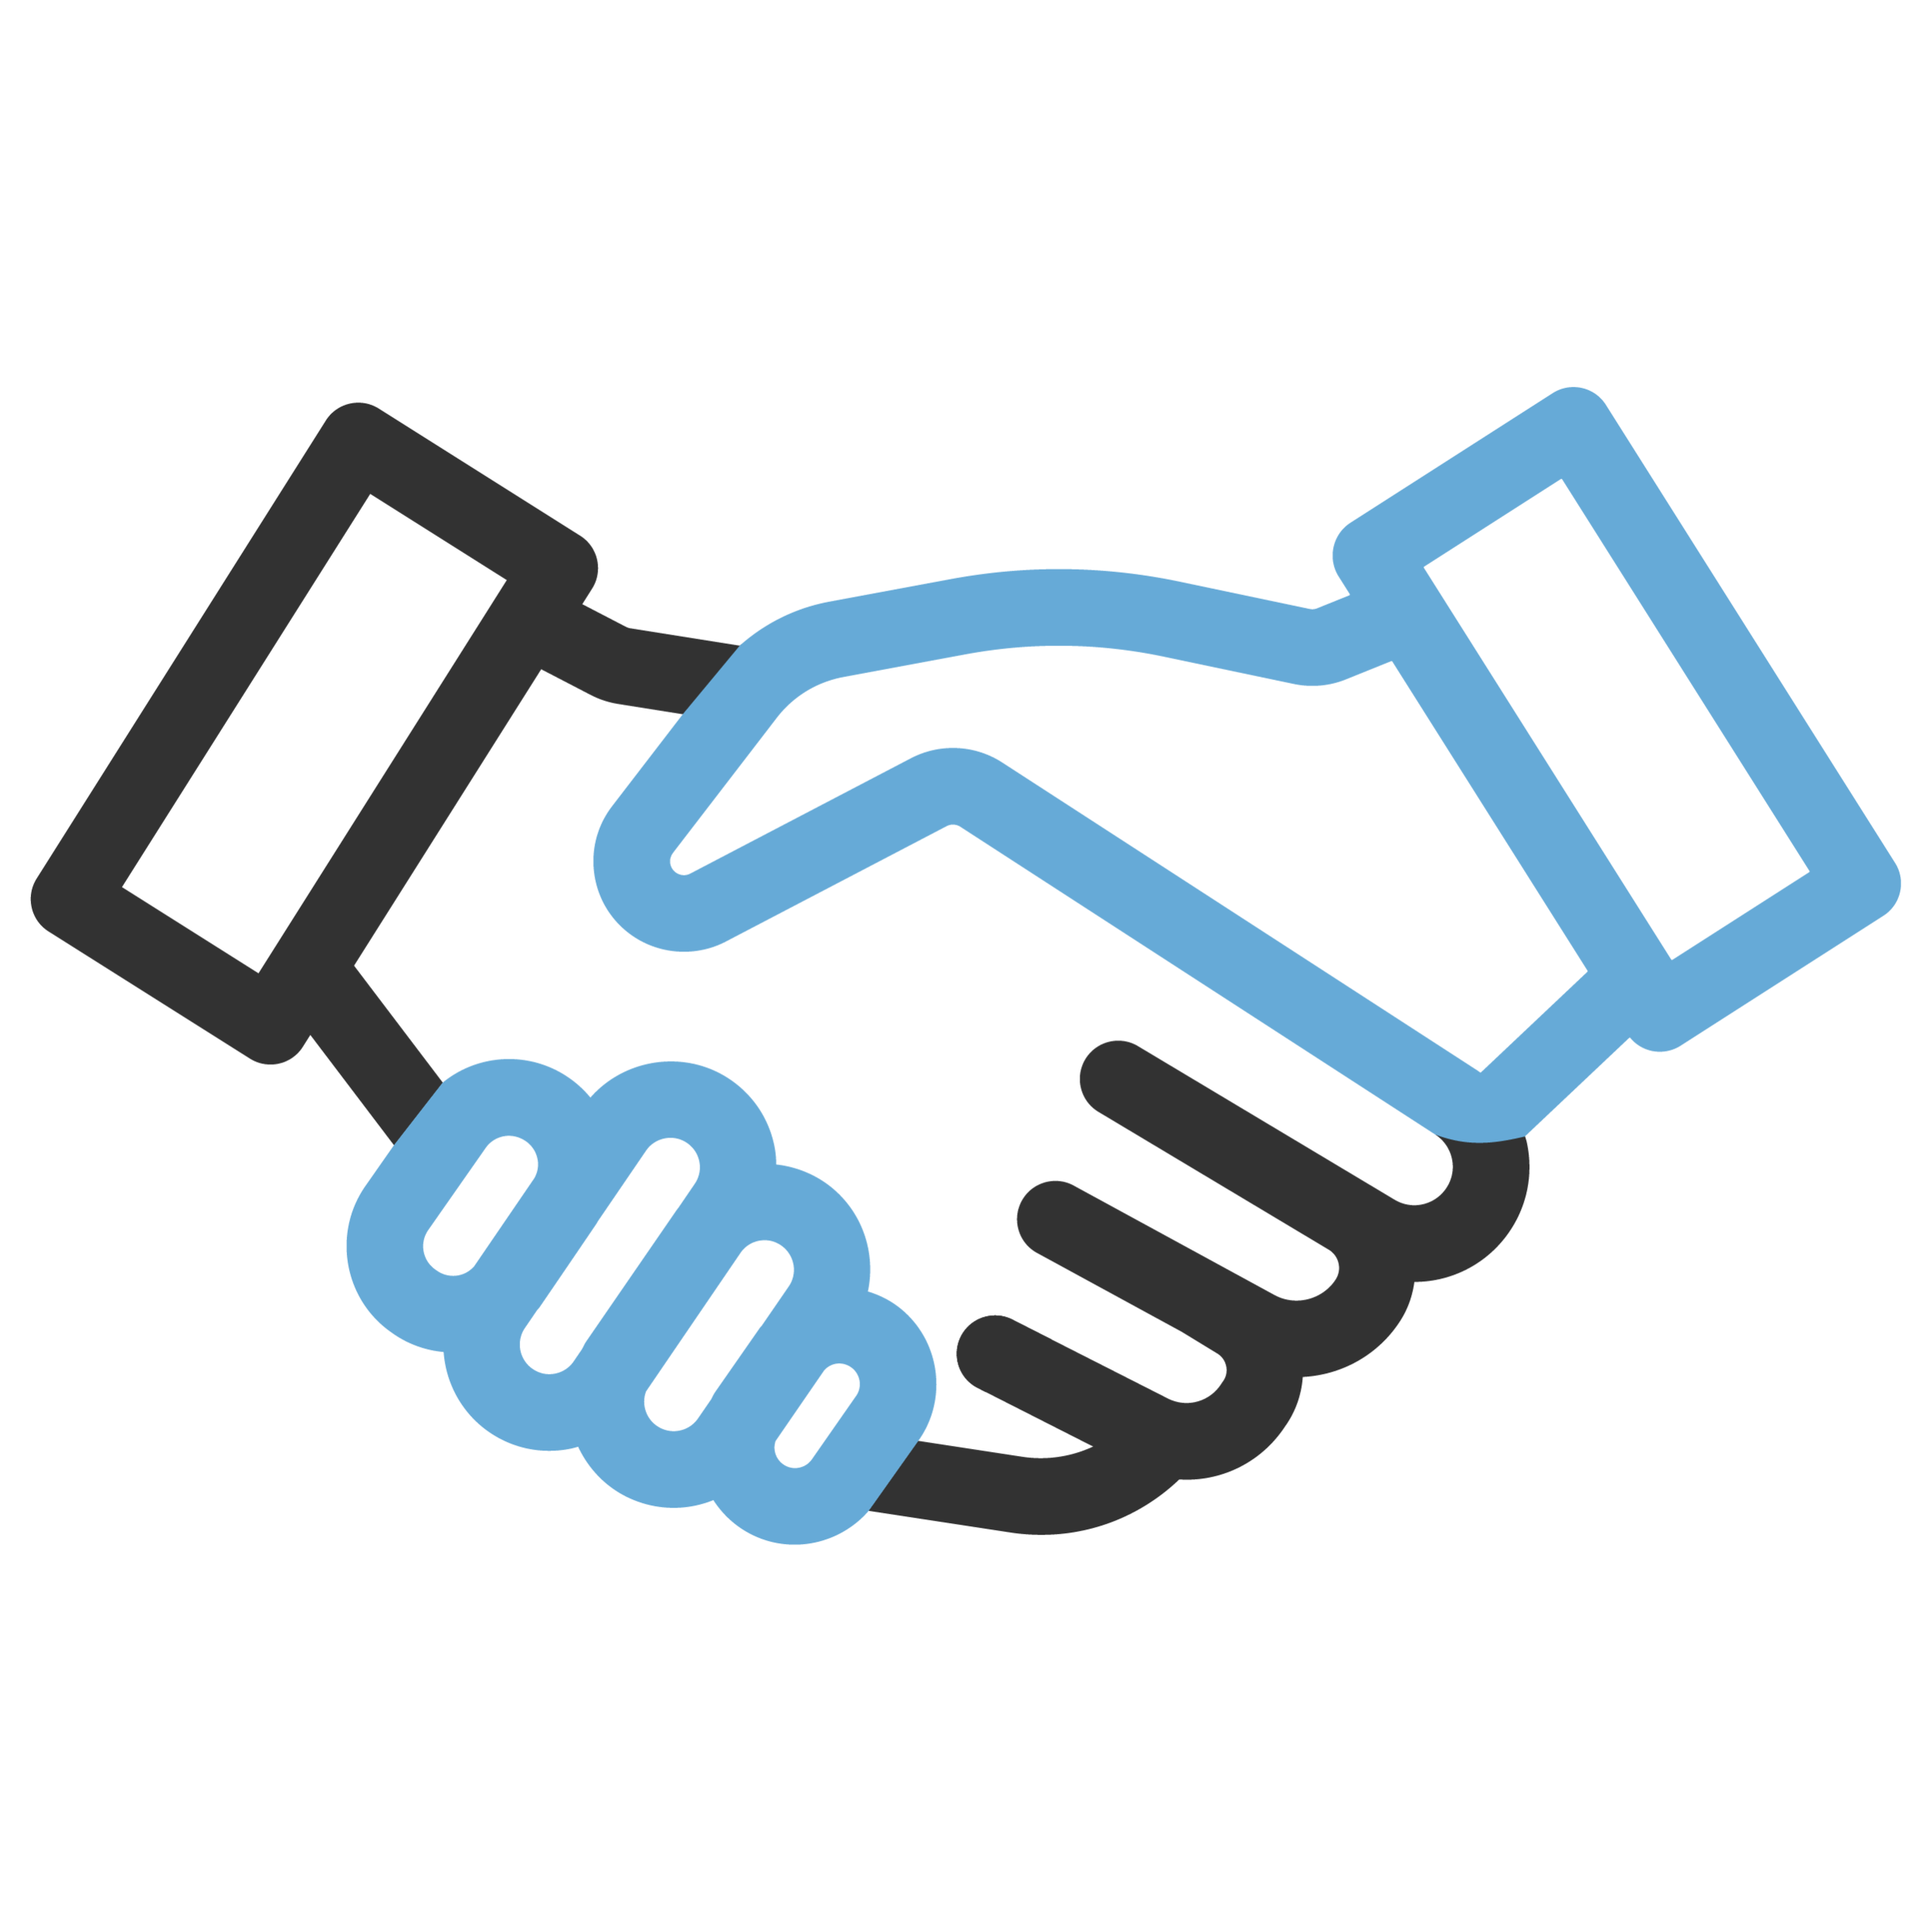 icon_hand_shake.png